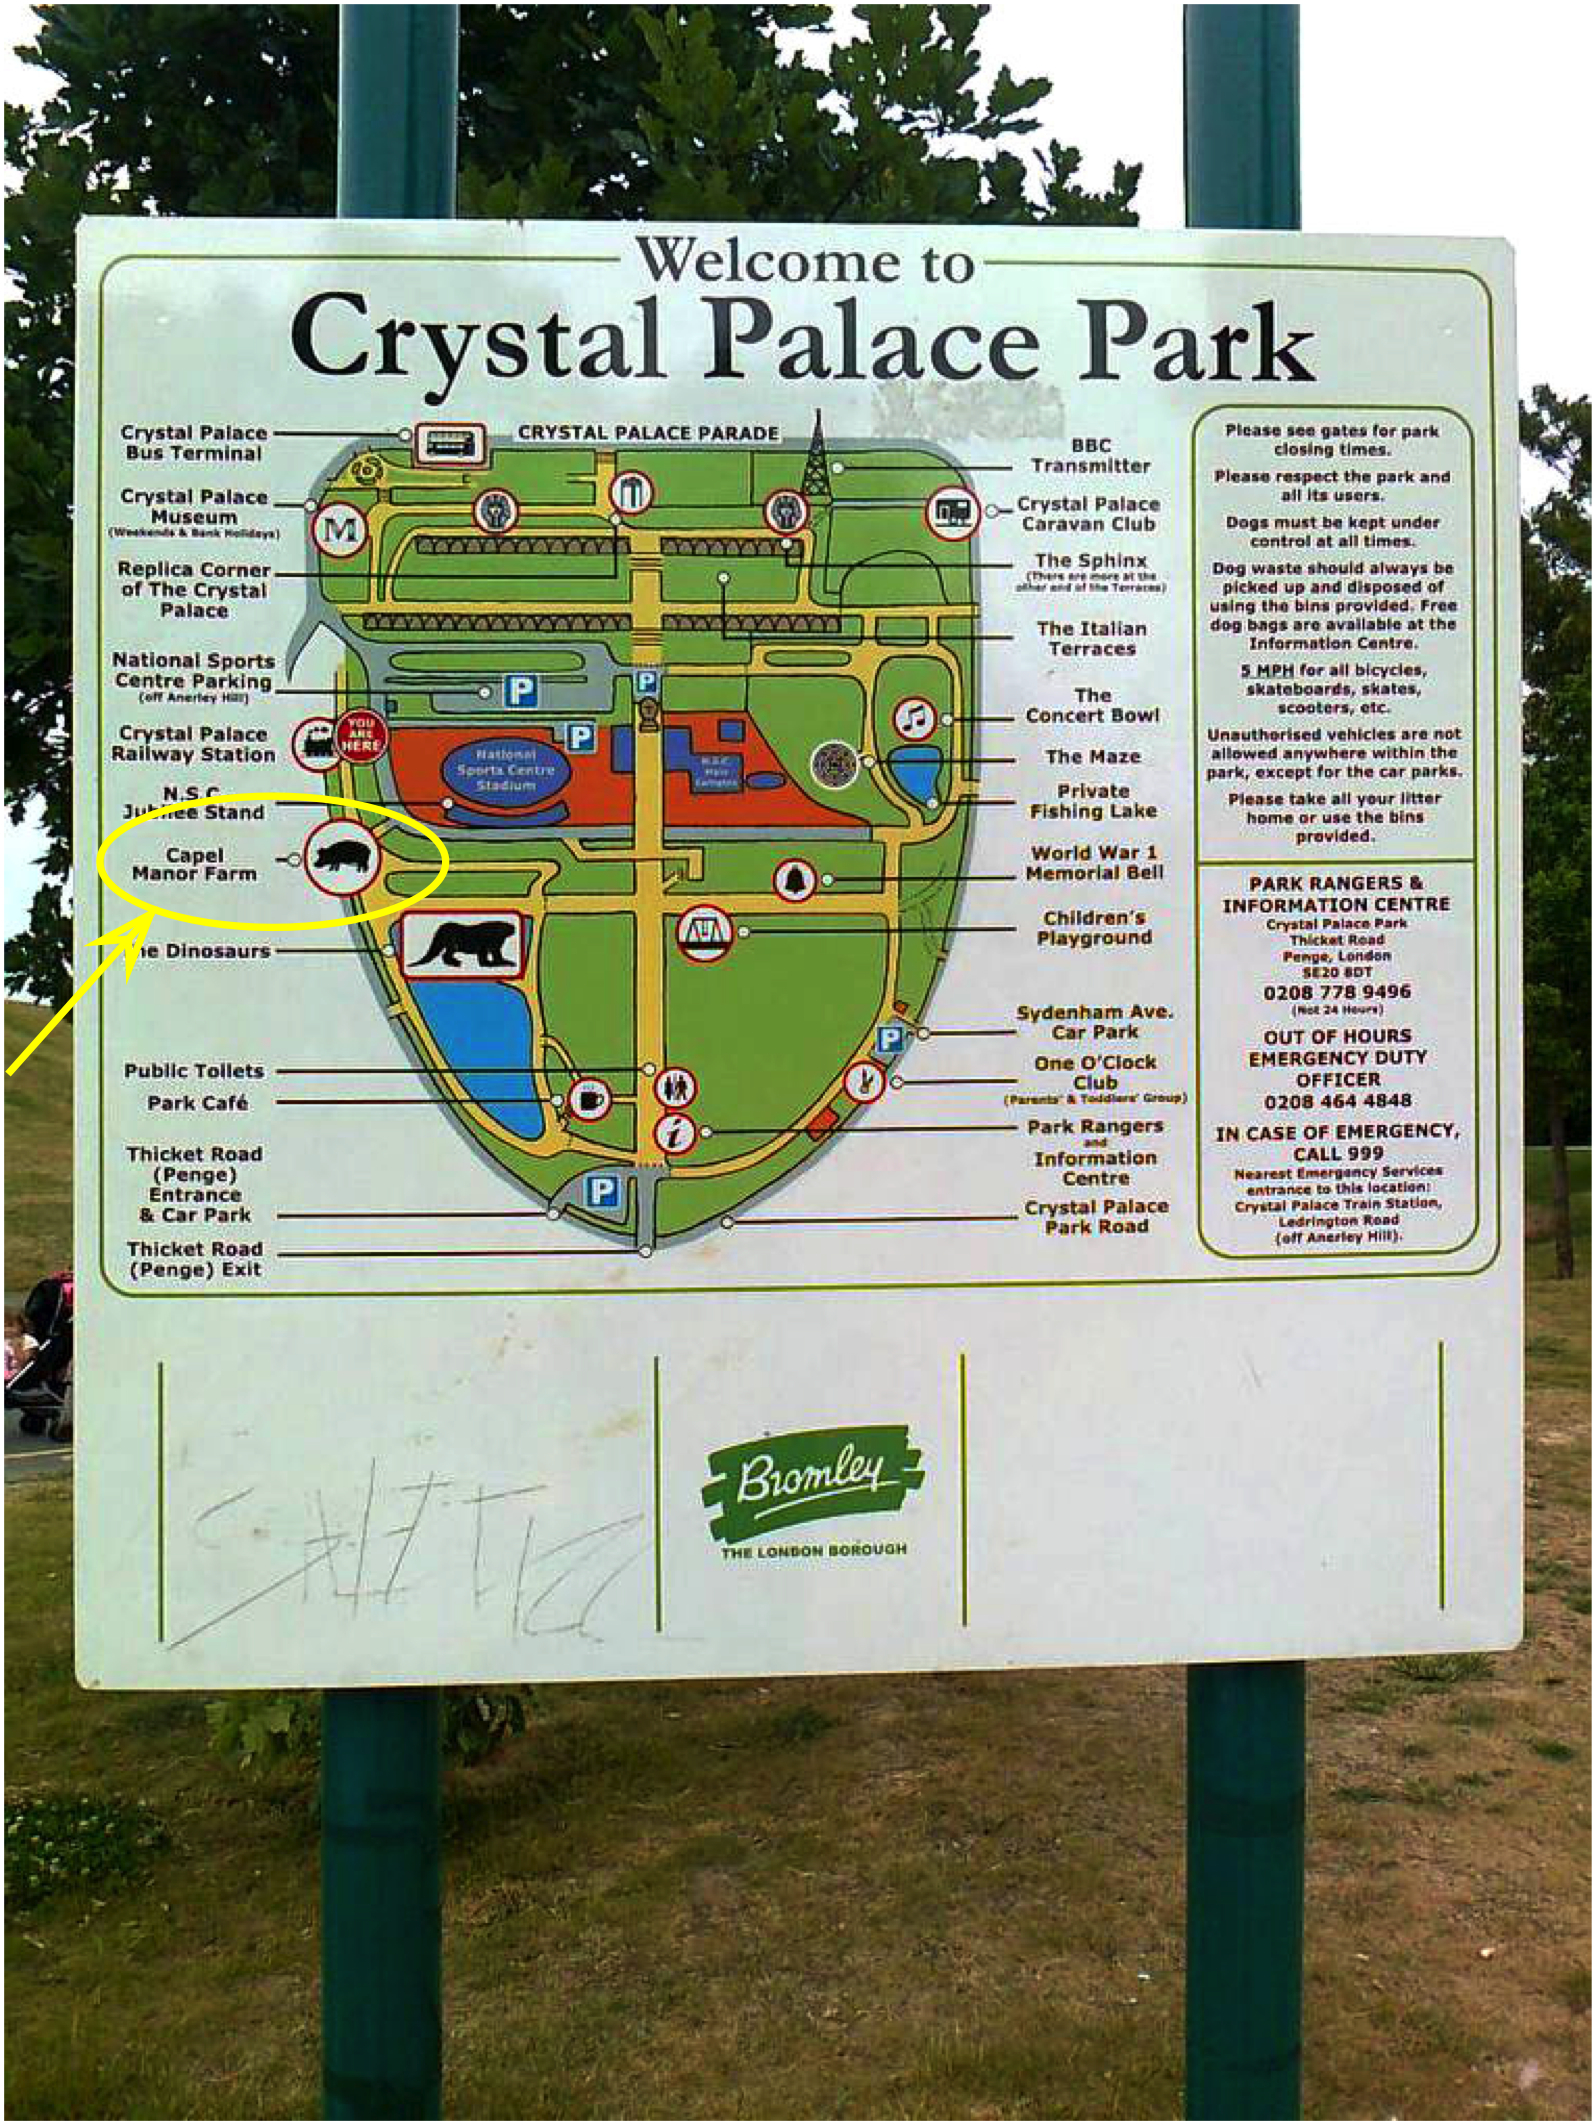 plan of Crystal Palace Park - signage